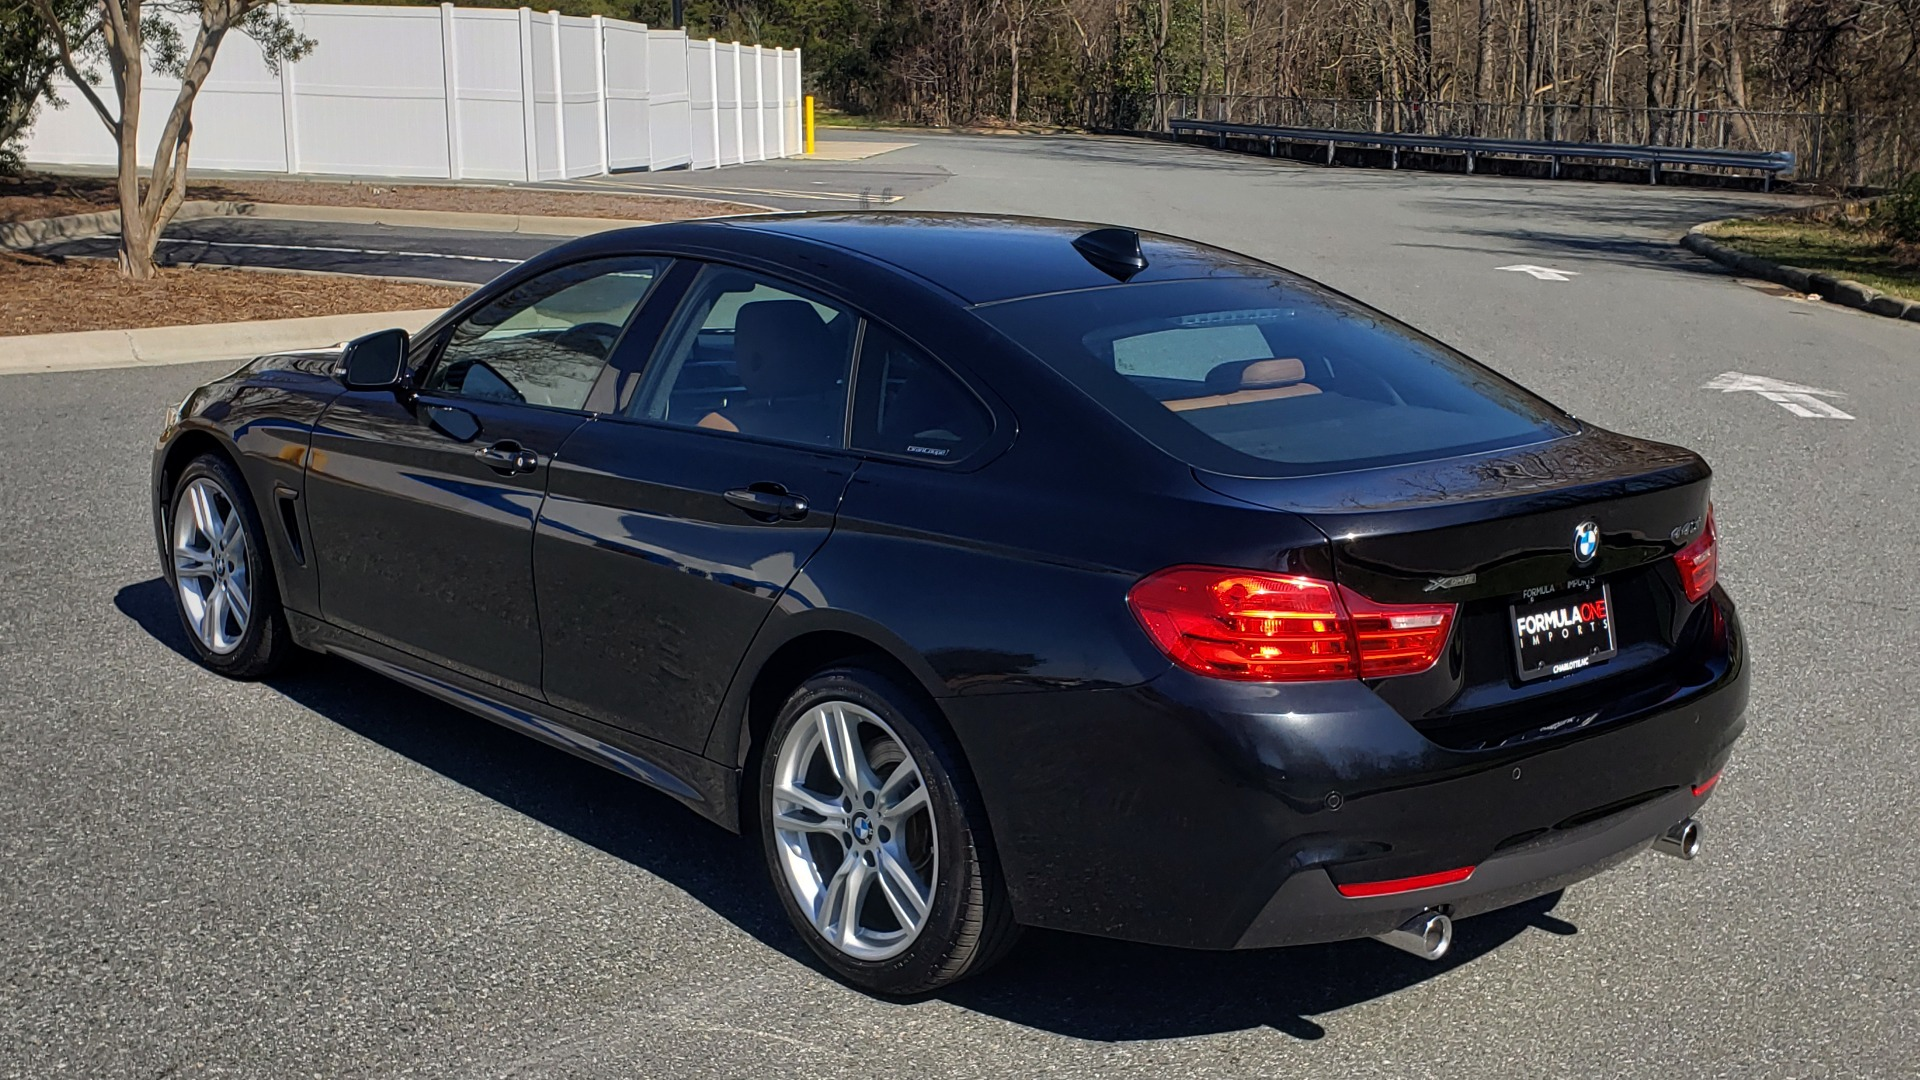 Used 2017 BMW 4 SERIES 440i XDRIVE M-SPORT / TECH / CLD WTHR / DRVR ASST PLUS / LIGHTING for sale Sold at Formula Imports in Charlotte NC 28227 3